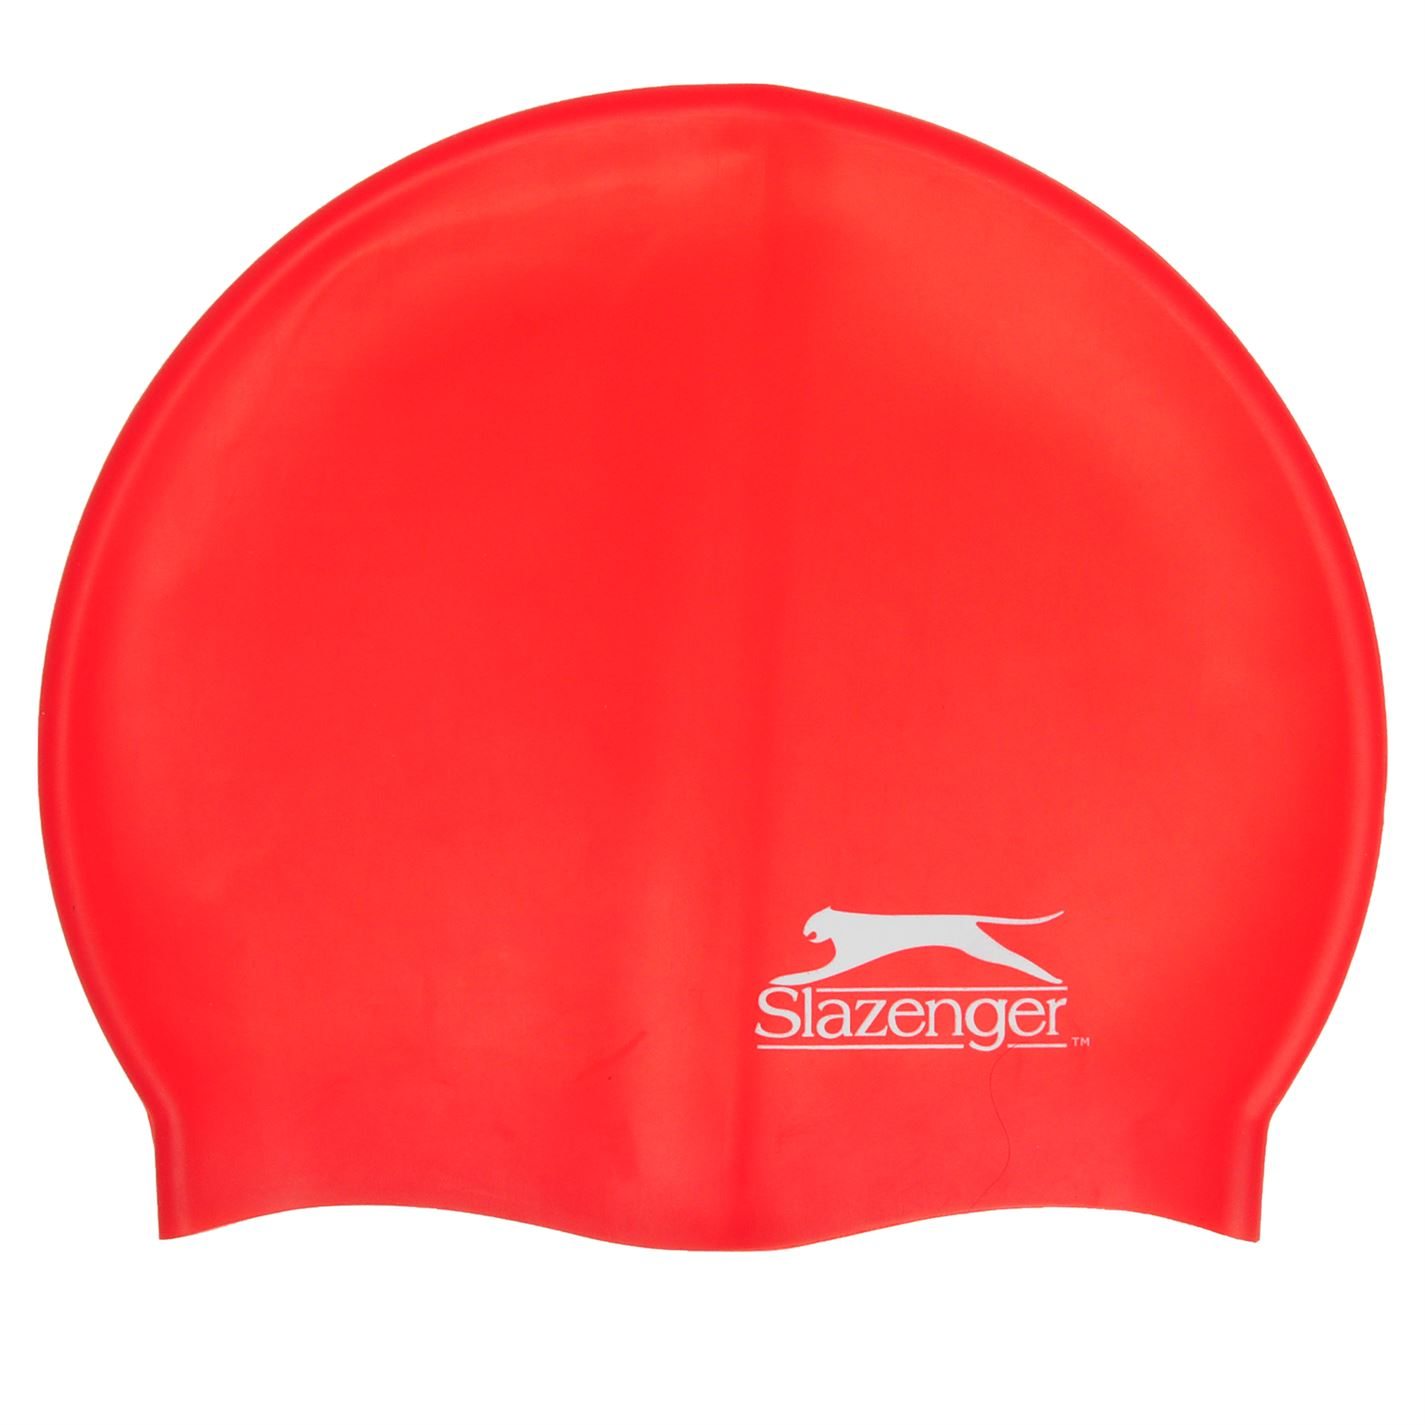 Slazenger Silicone Swimming Cap Adults Red